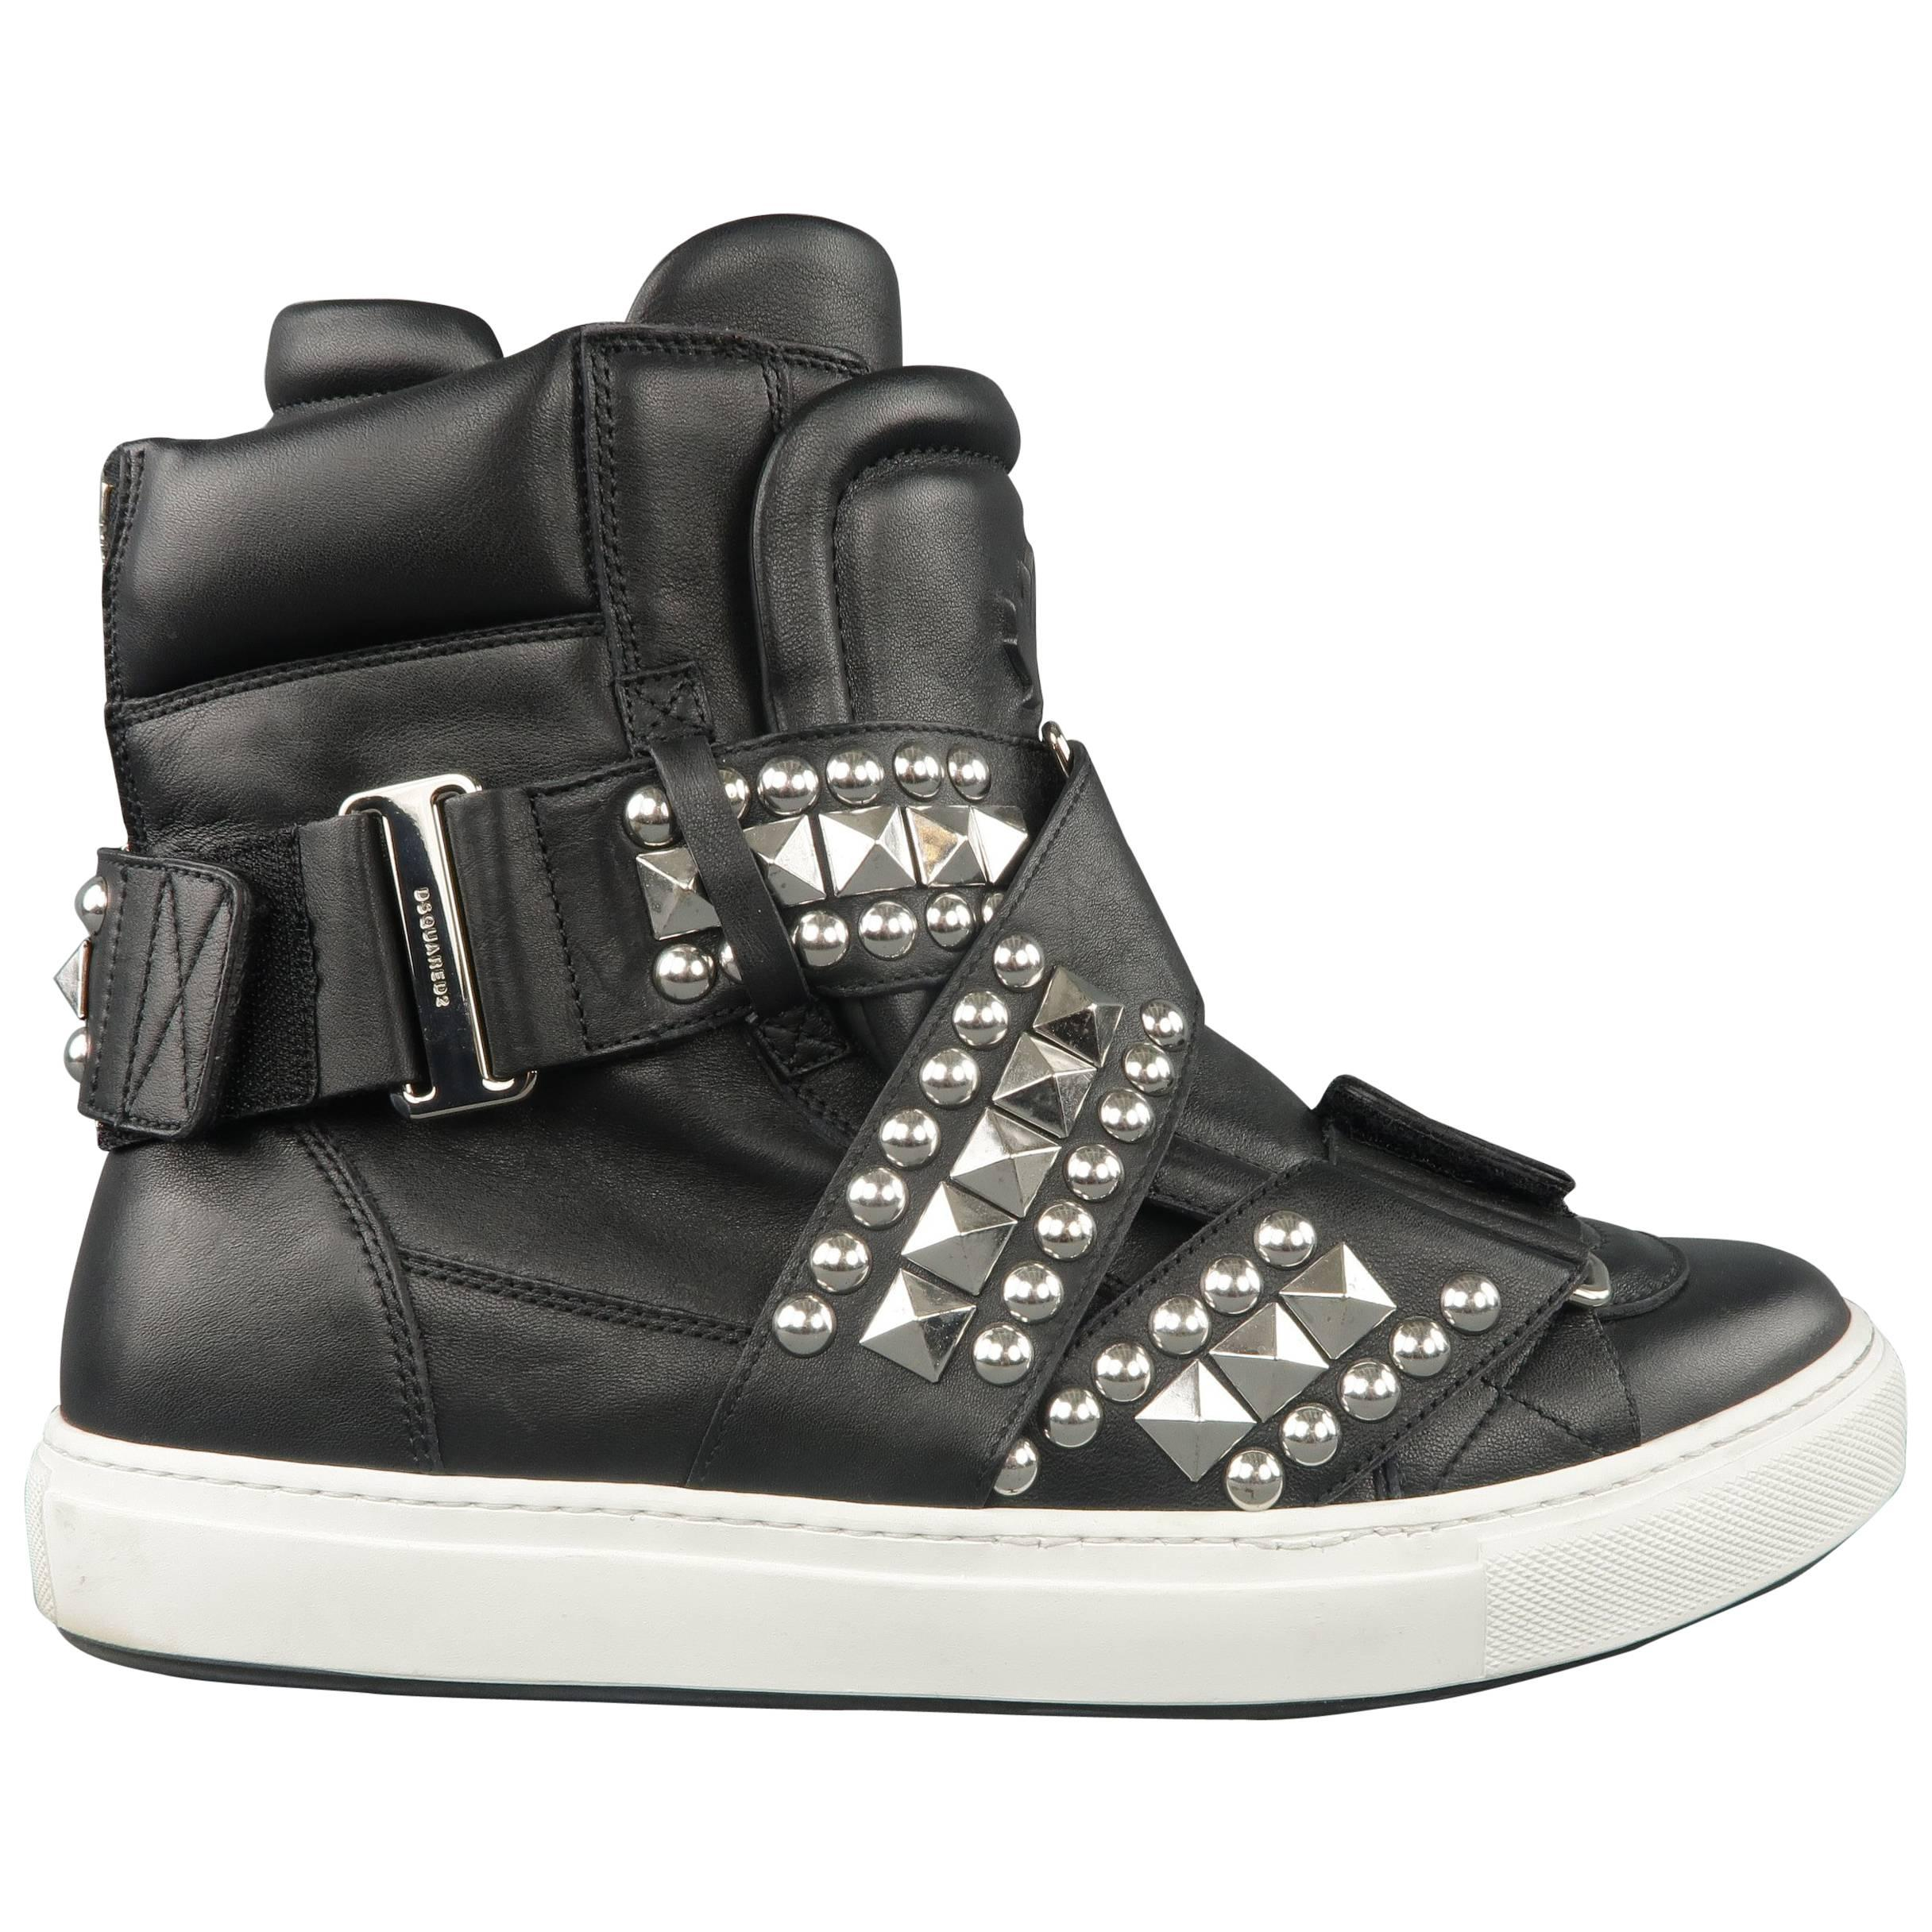 Leather Studded 5 Dsquared2 For 9 High Top Sneakers Black Silver ChxQtsrd